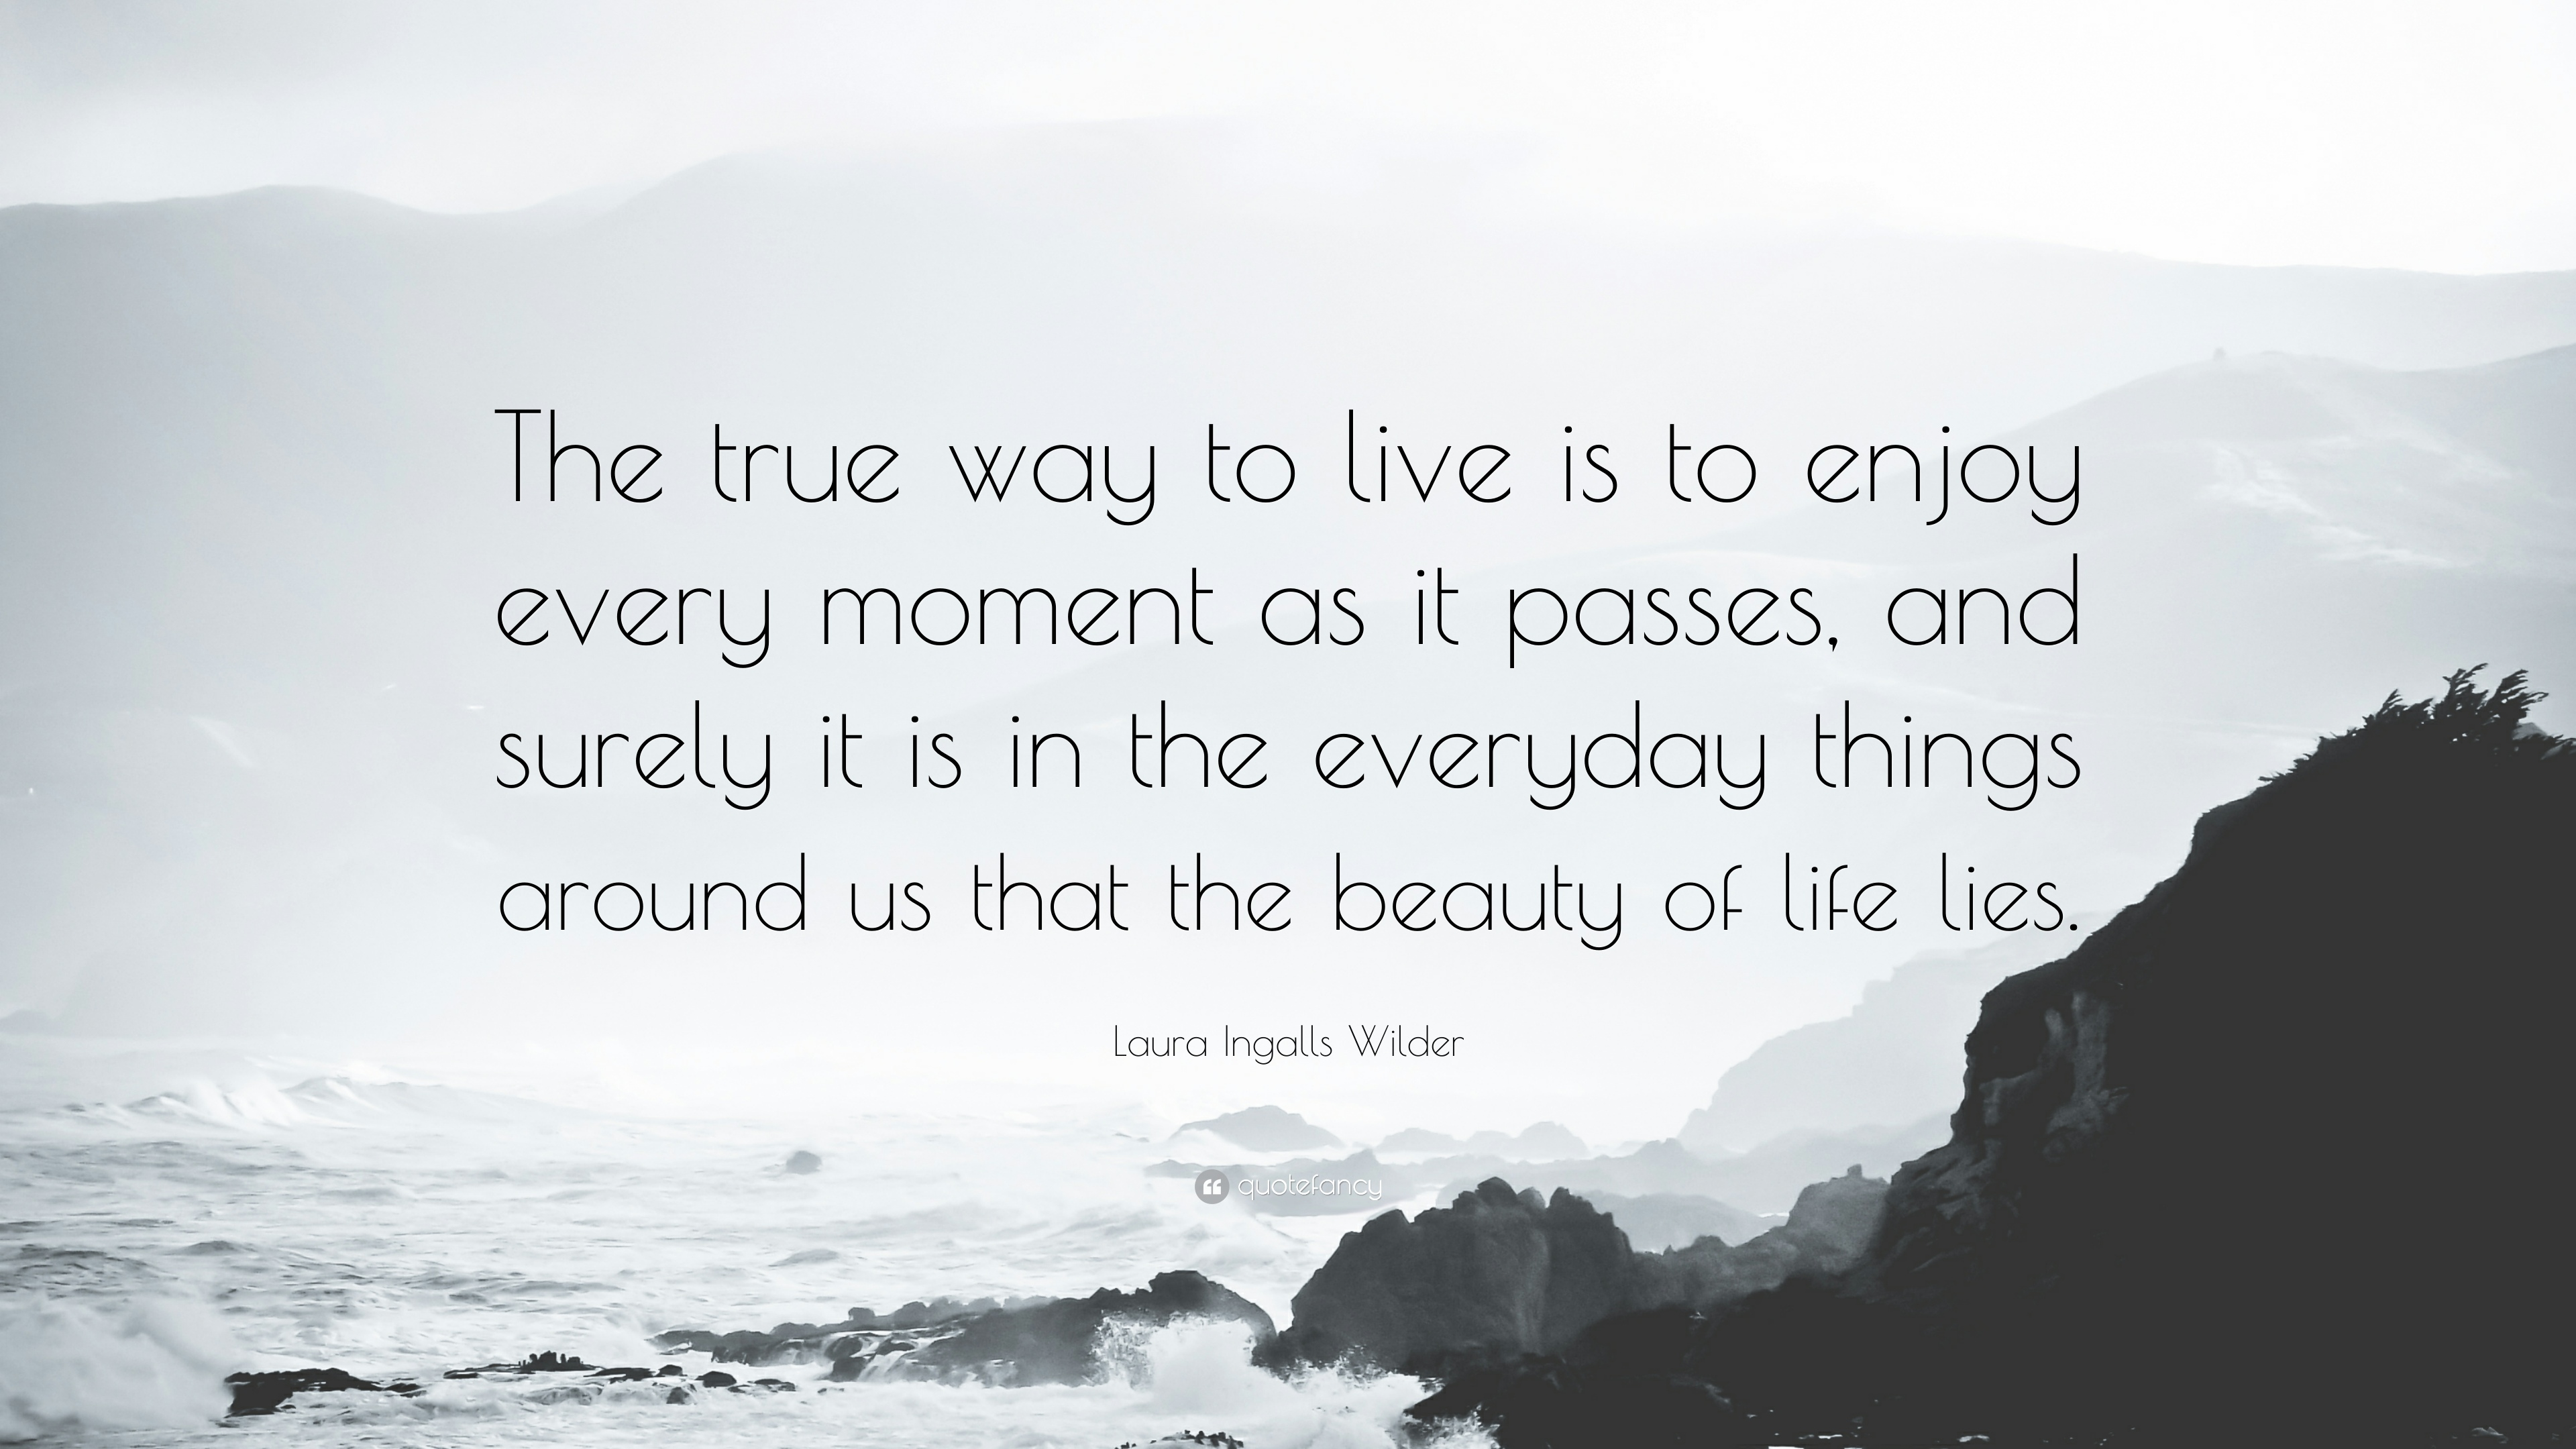 Laura Ingalls Wilder Quote The True Way To Live Is To Enjoy Every